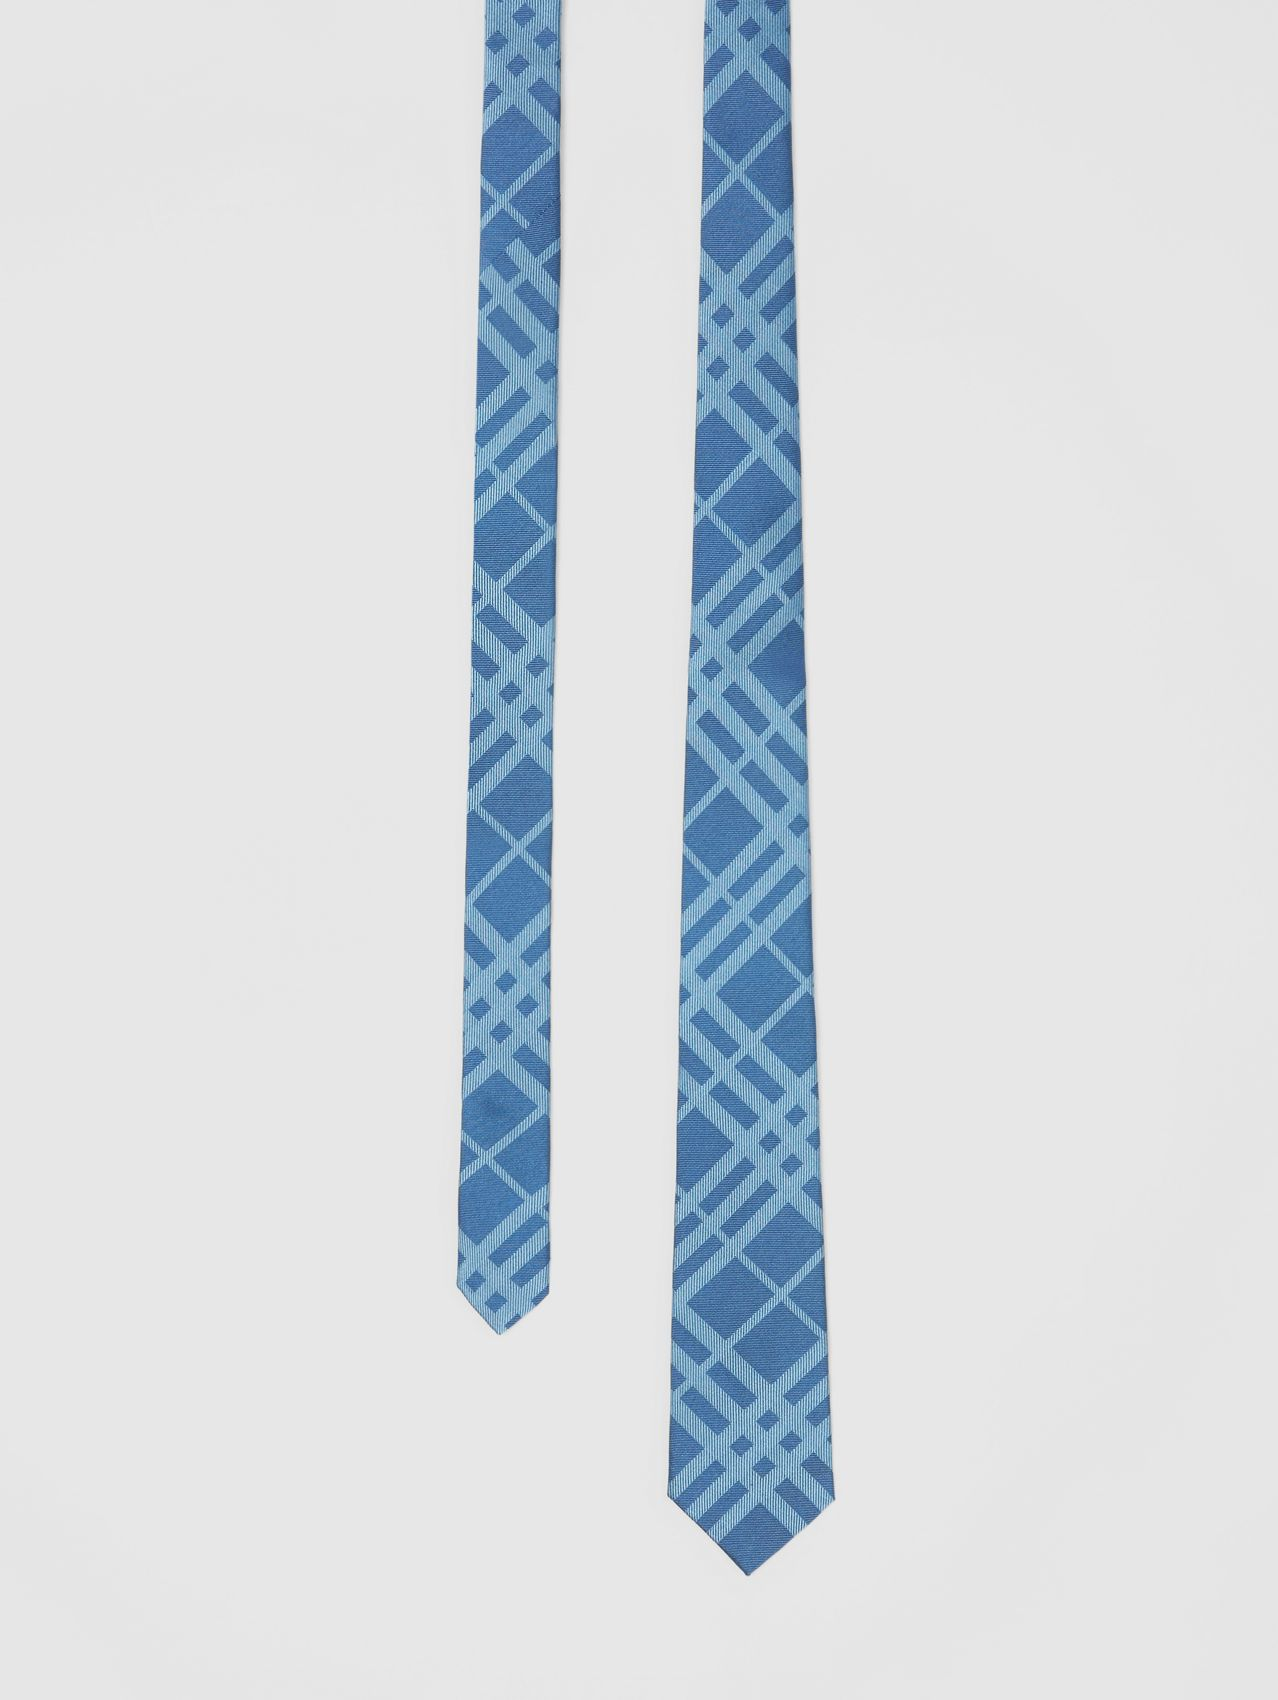 Classic Cut Check Silk Jacquard Tie in Blue Topaz